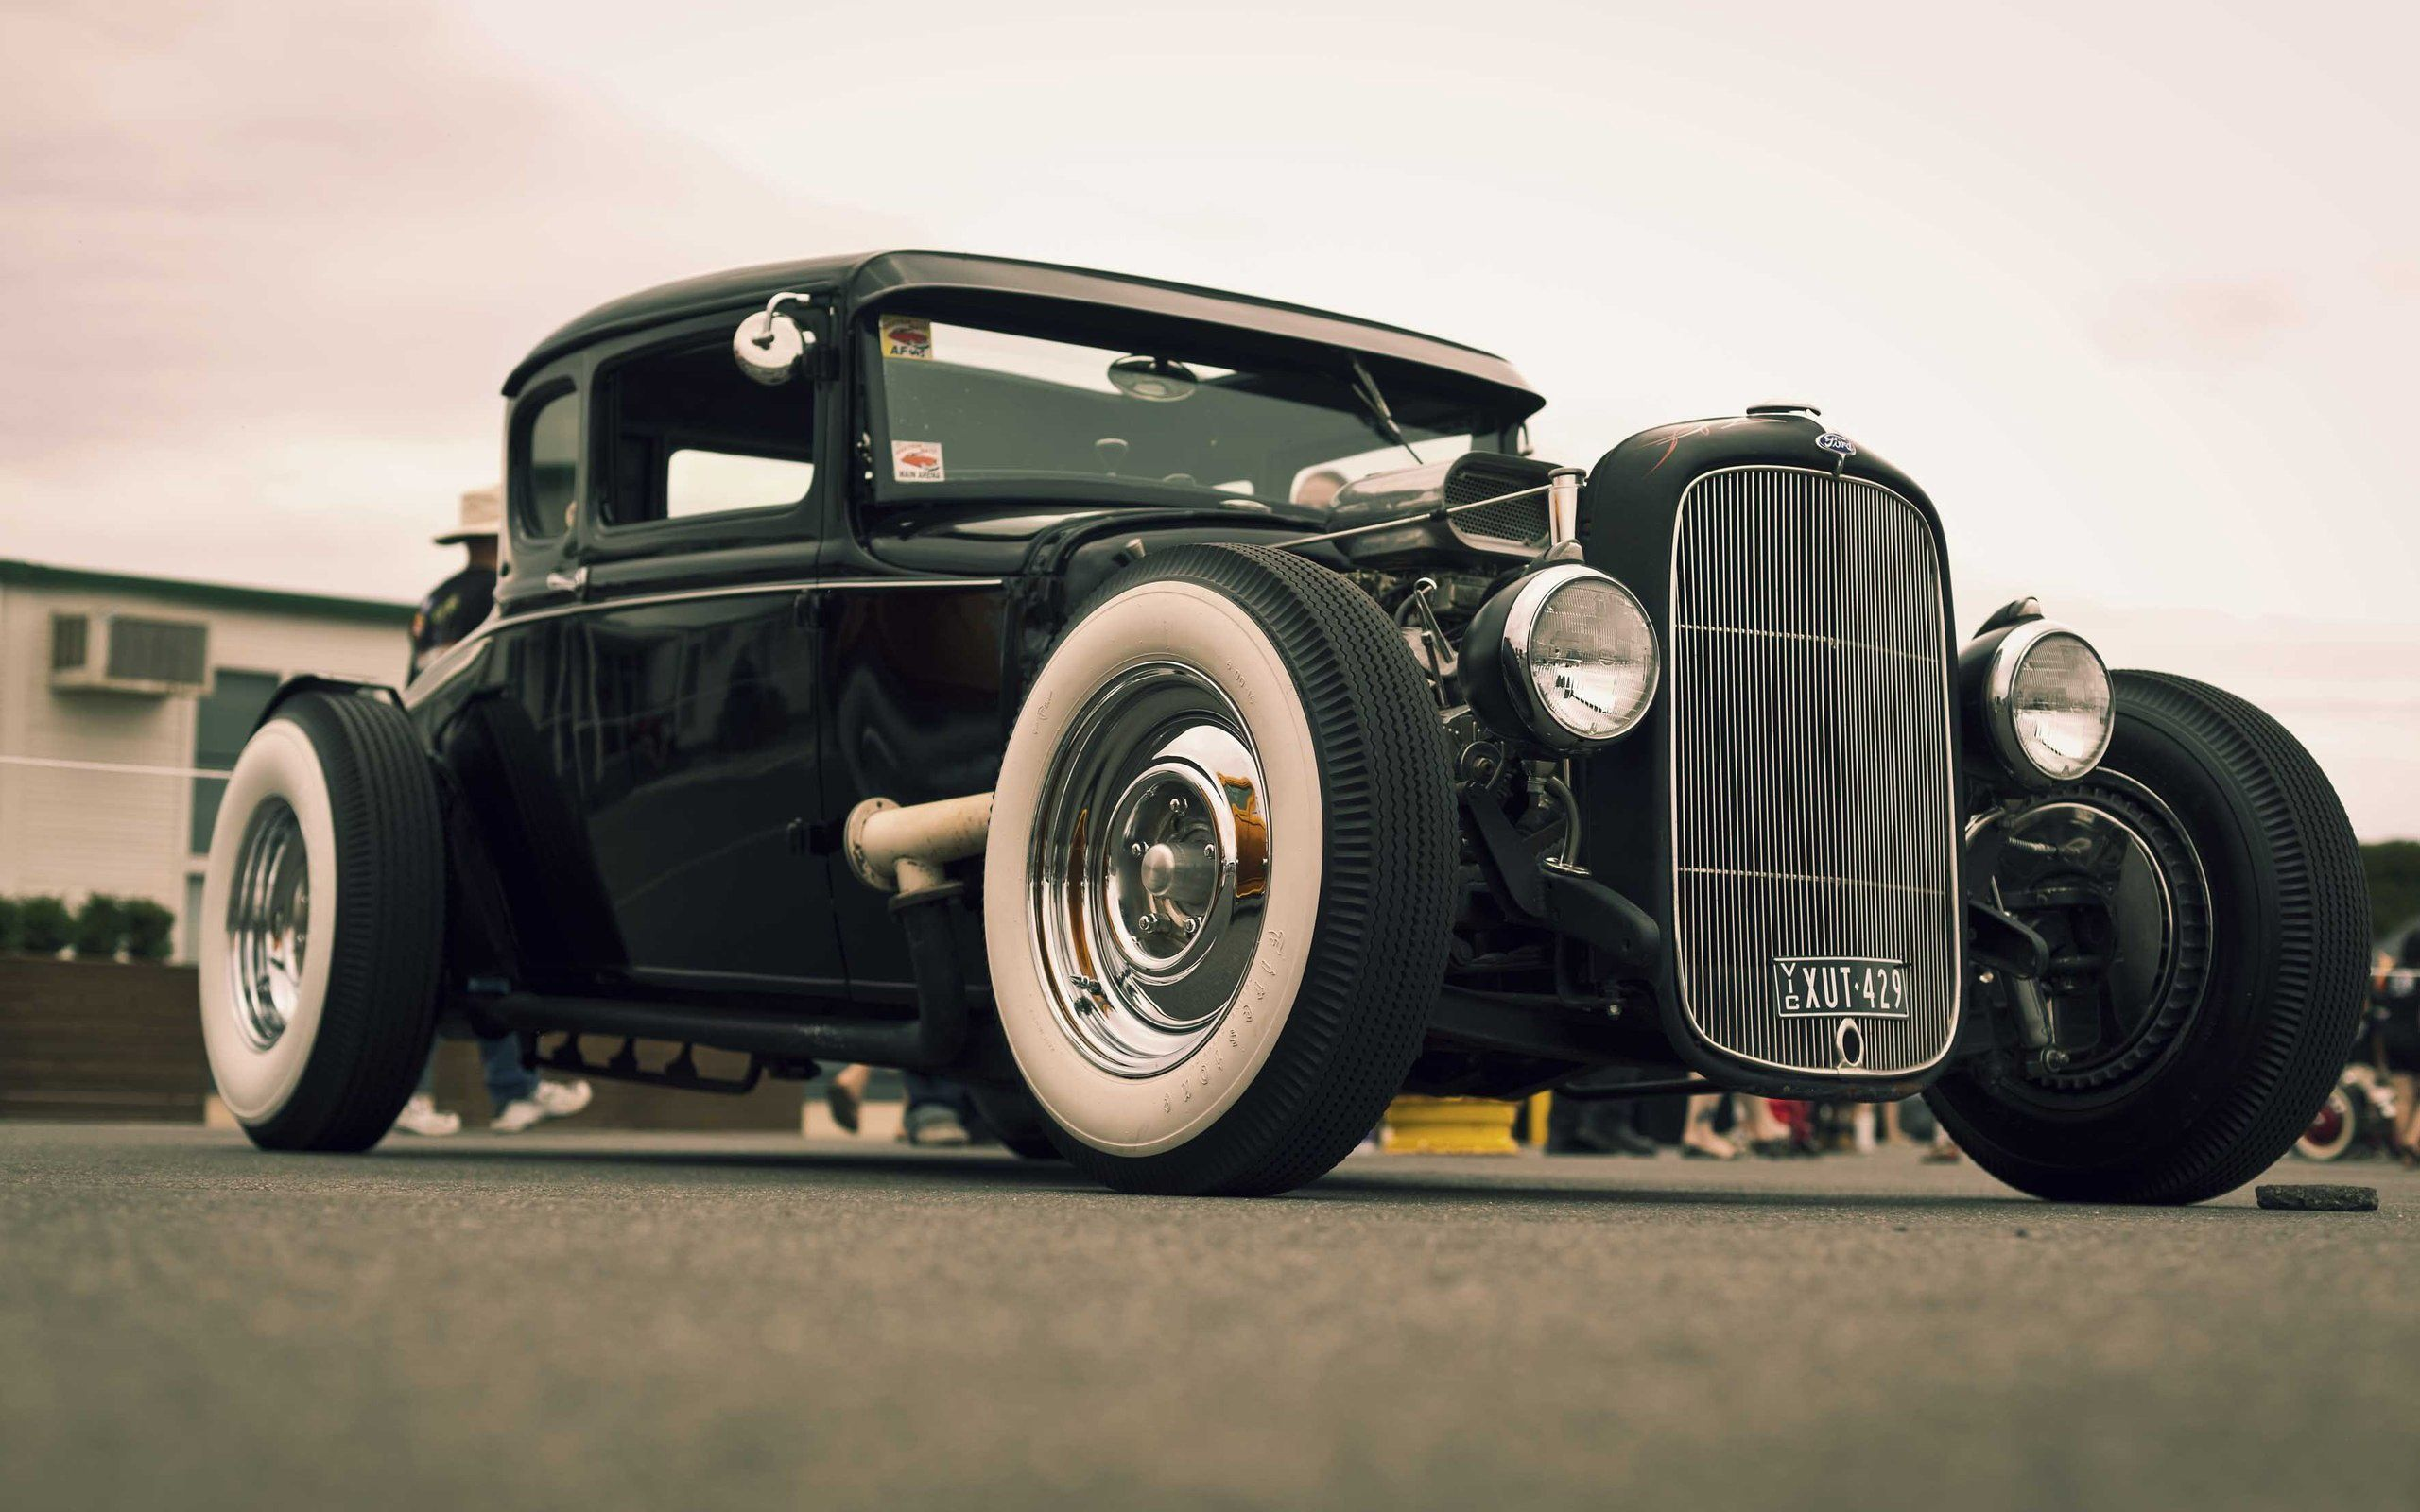 Classic Black Hot Rod Car HD Desktop